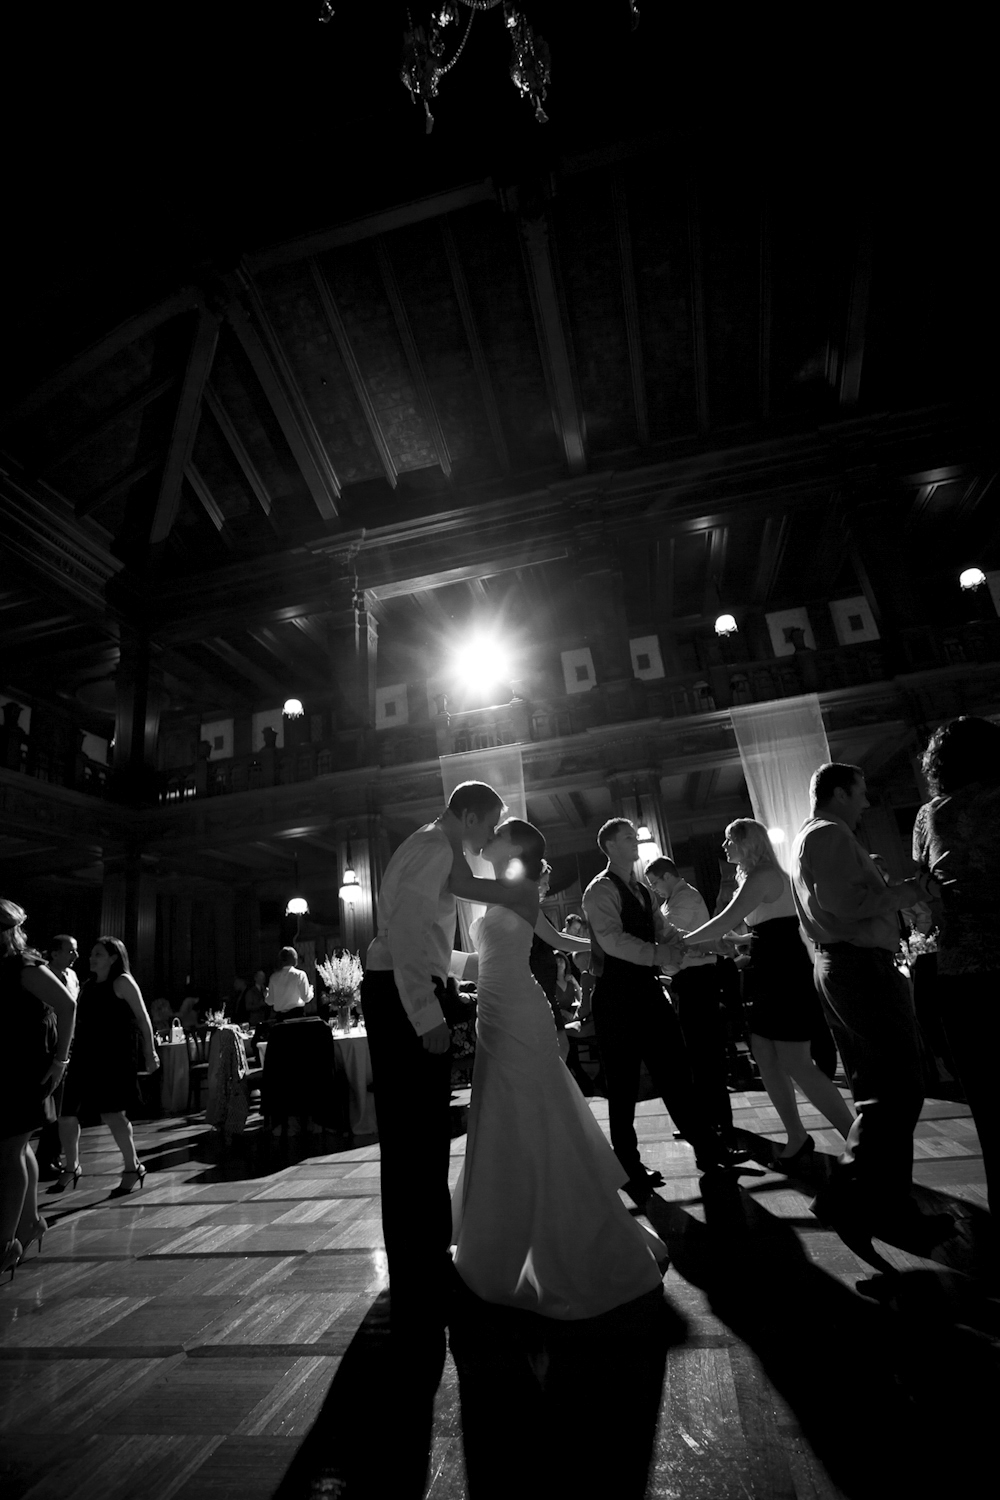 Indianapolis-Indiana-Wedding-Photographer-Crowes-Eye-Photography-Scottish-Rite-Catherdral-Ballroom-.jpg